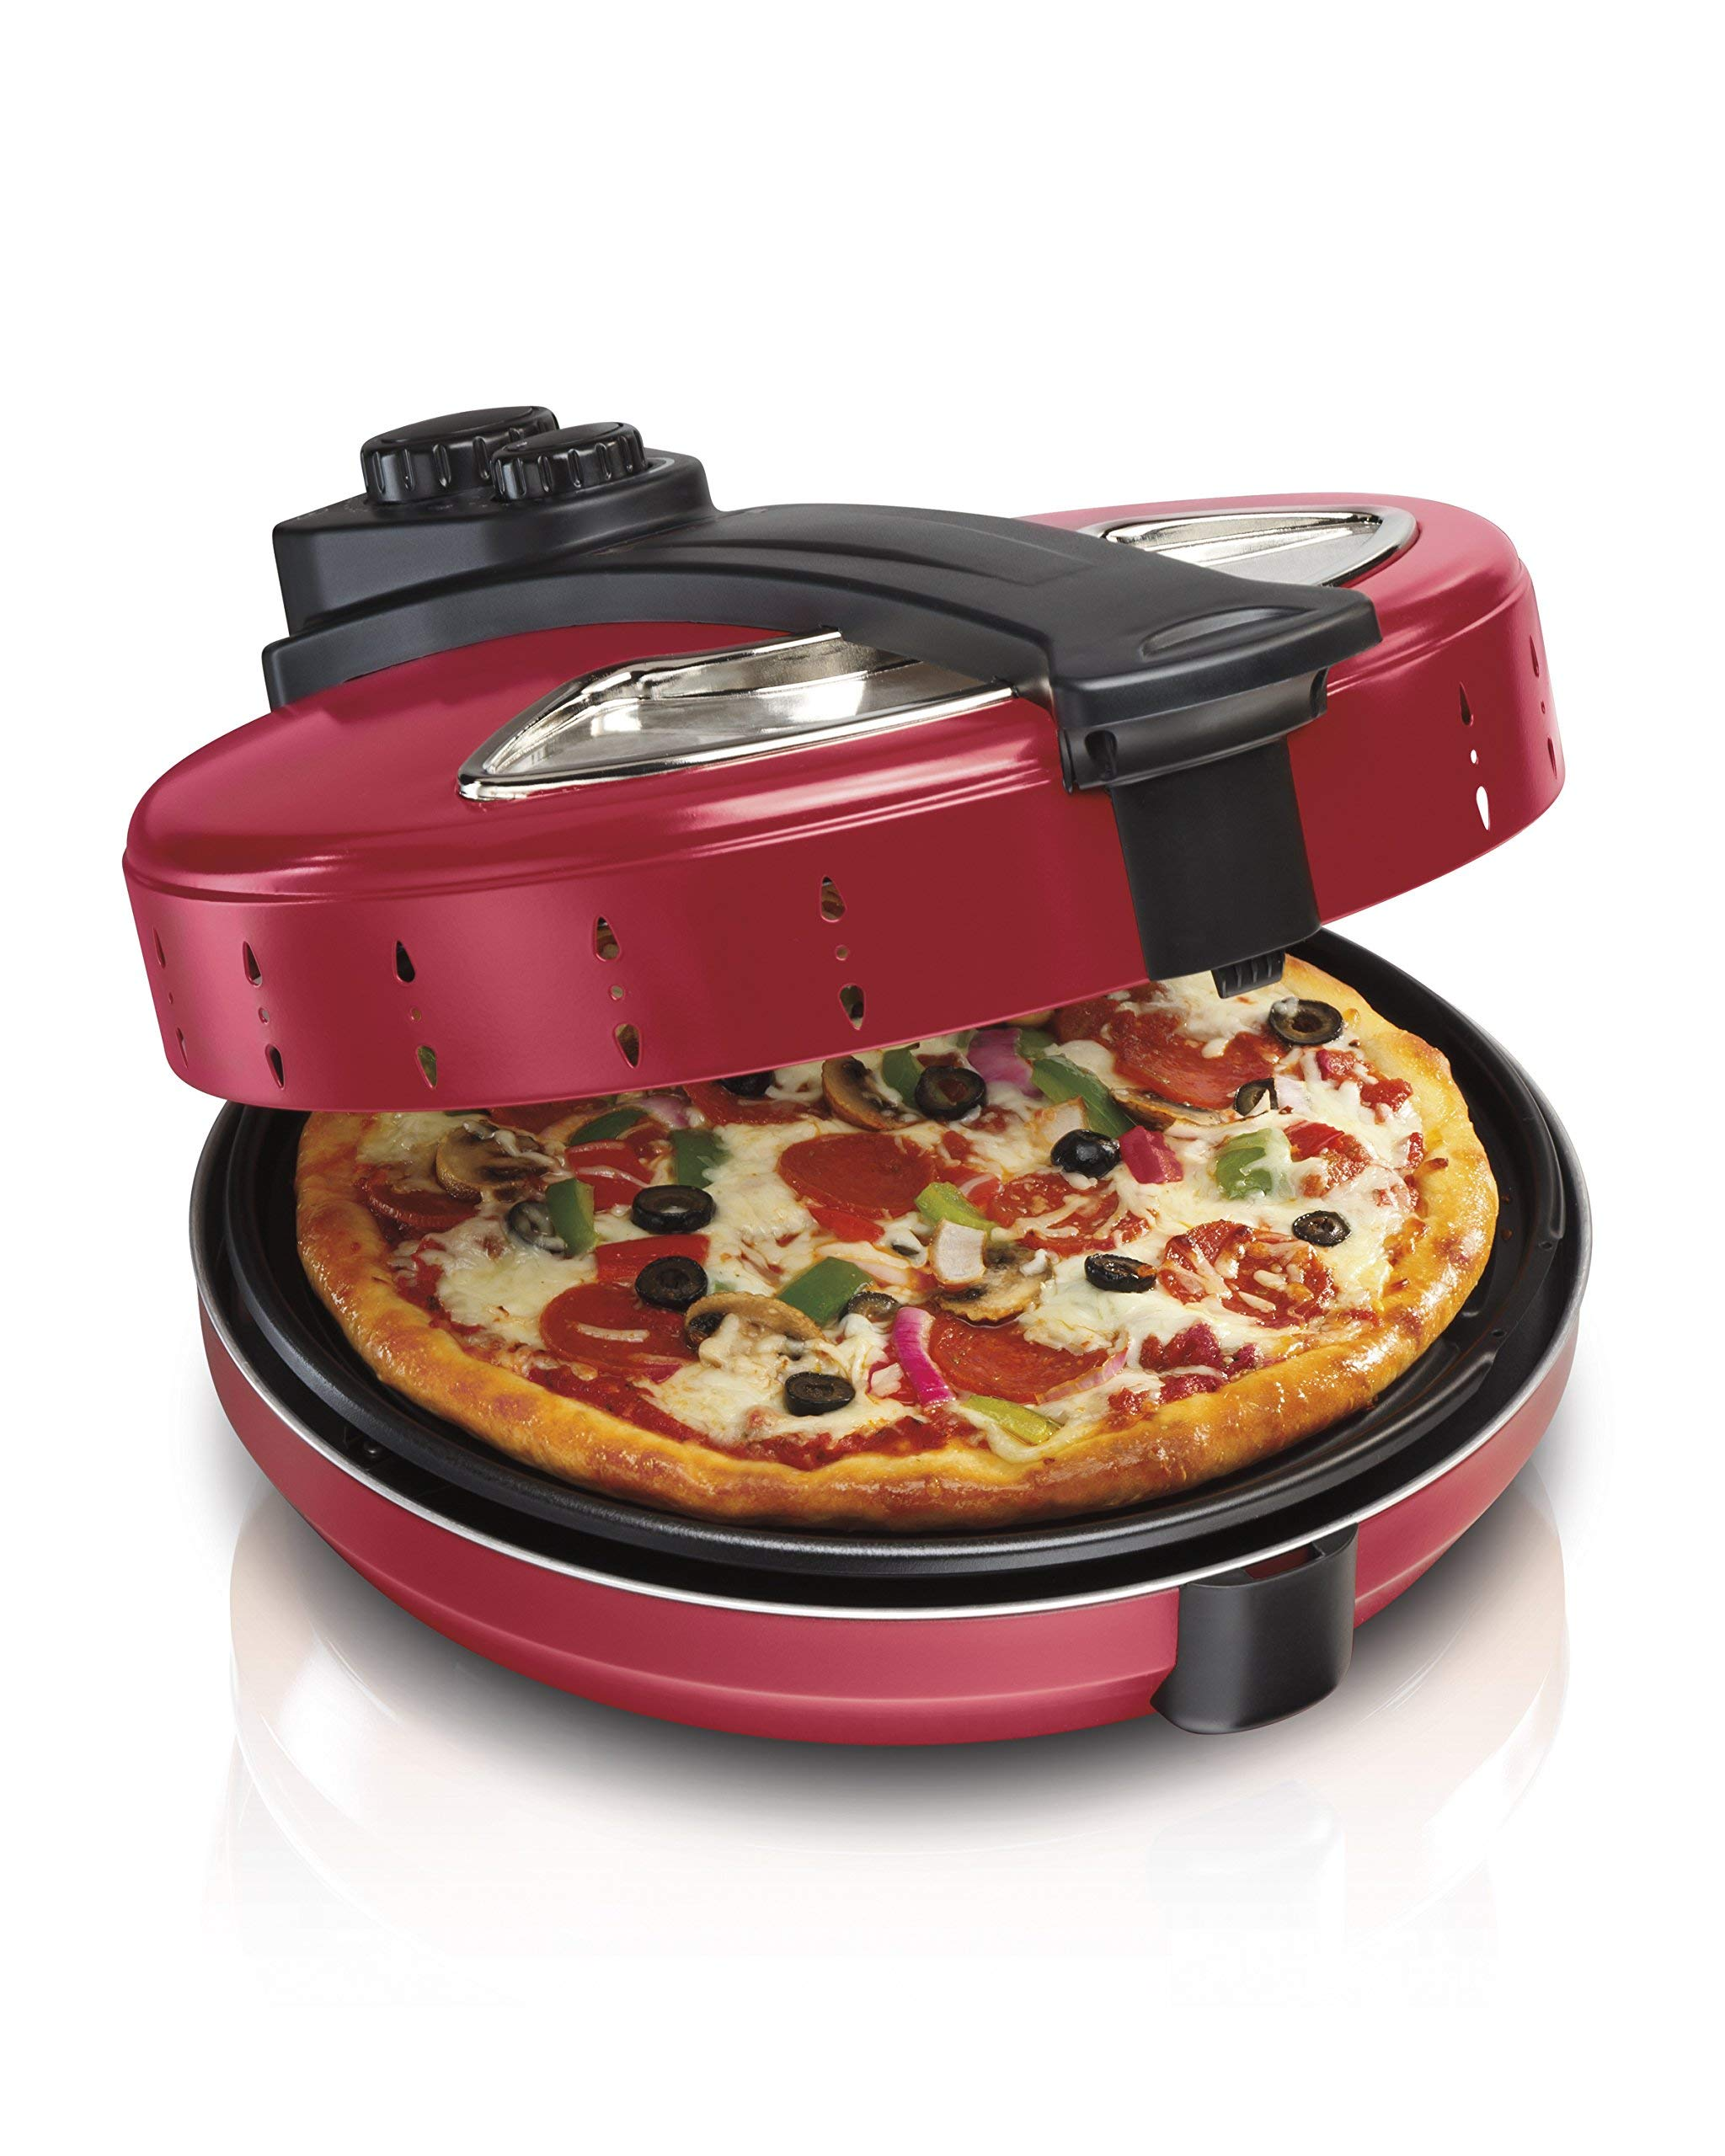 Hamilton Beach 31700, 12 Inch Cooker, Red Pizza Maker, (Renewed)